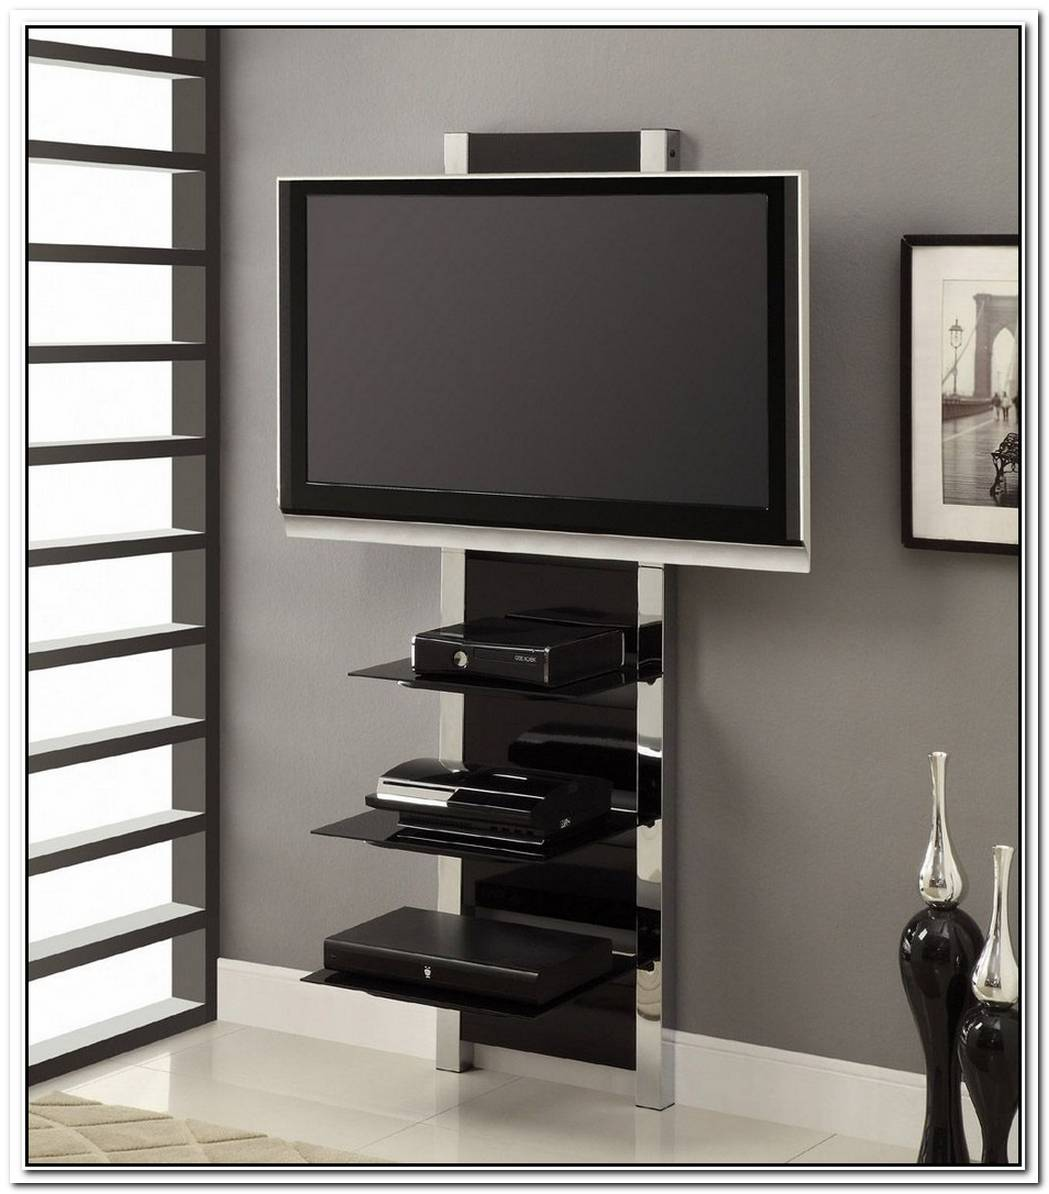 Altramount Tv Stand